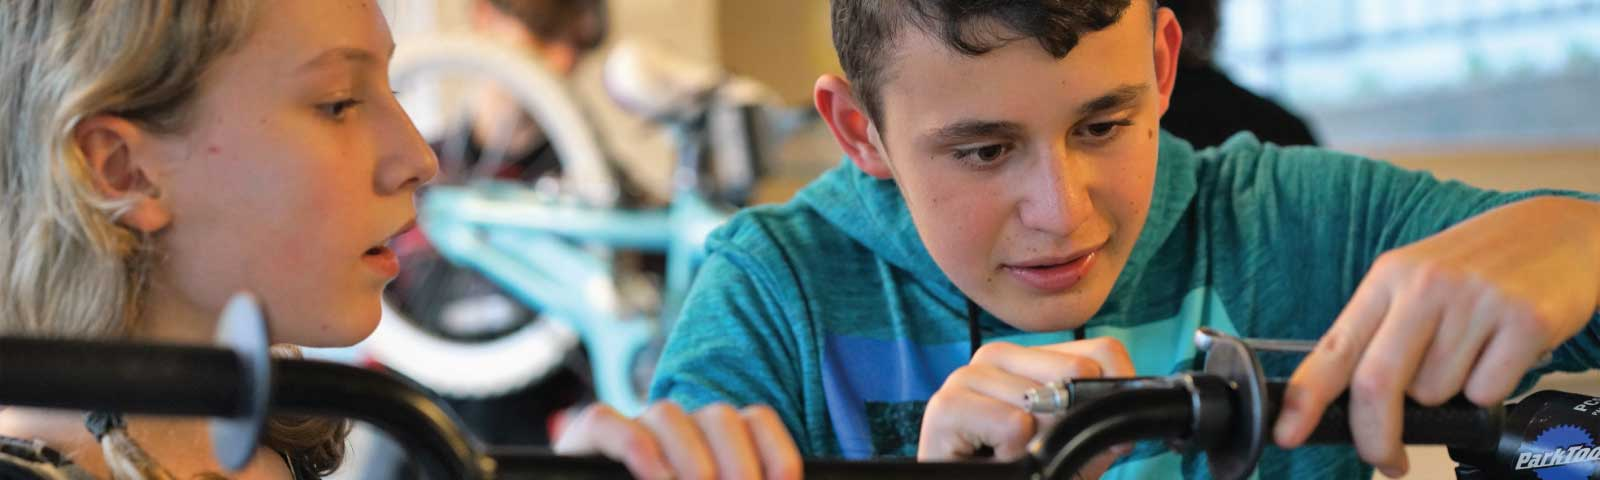 Hands on classes at Bike Works teach youth